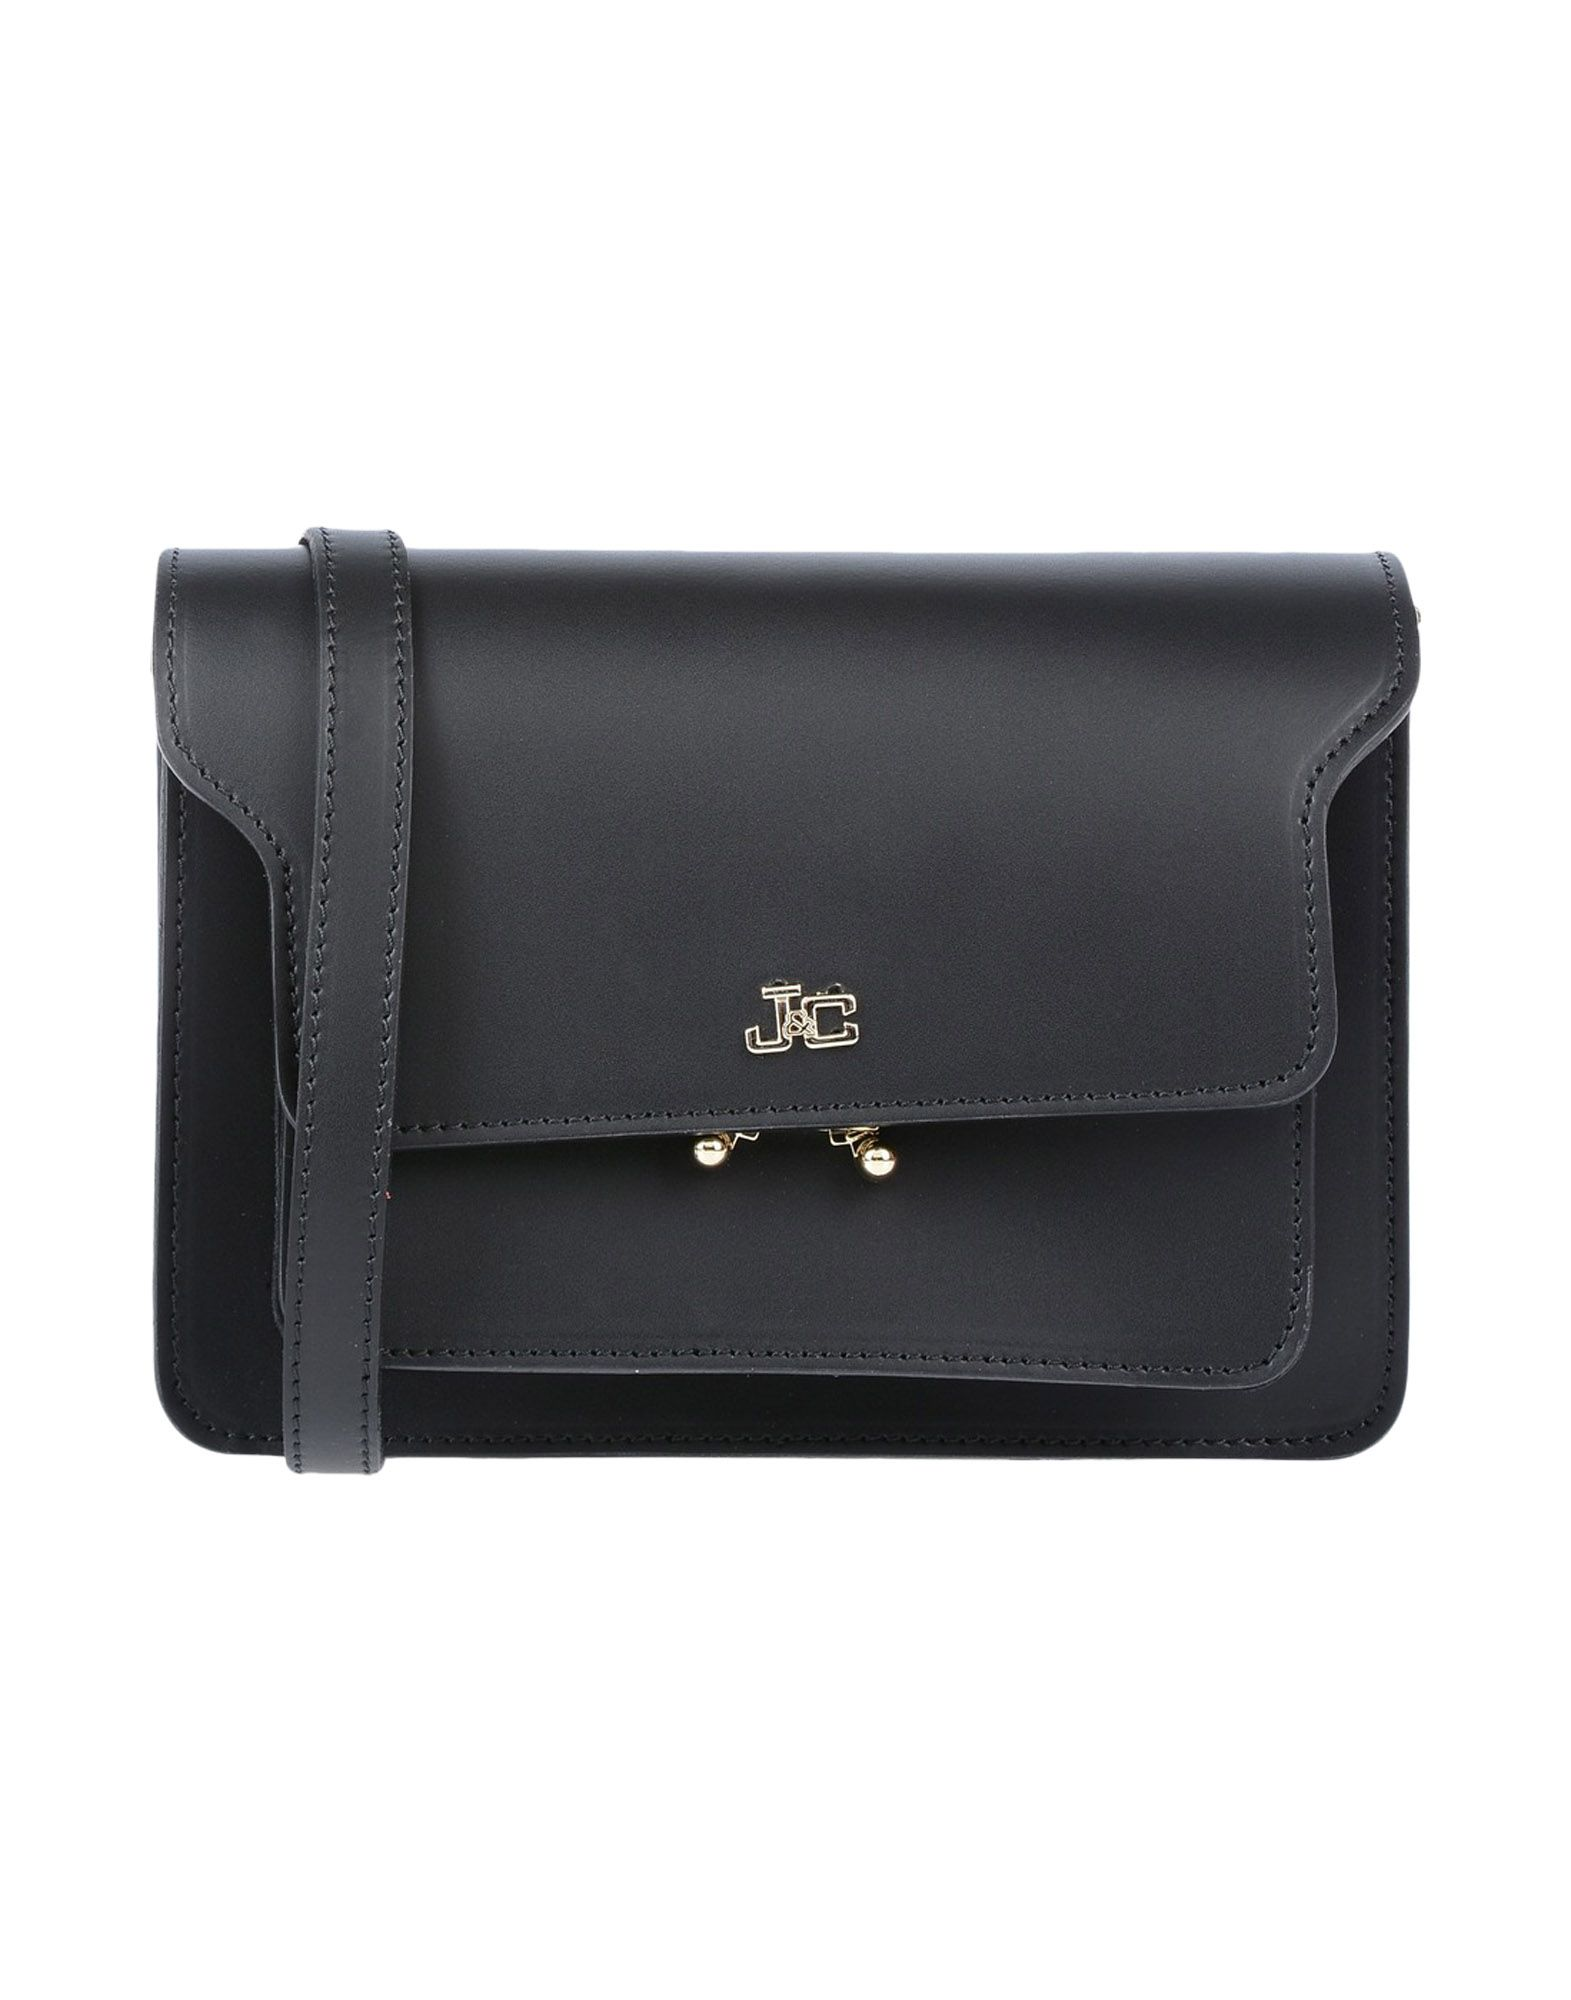 J C Jackyceline Women Spring Summer And Fall Winter Collections Online At Yoox